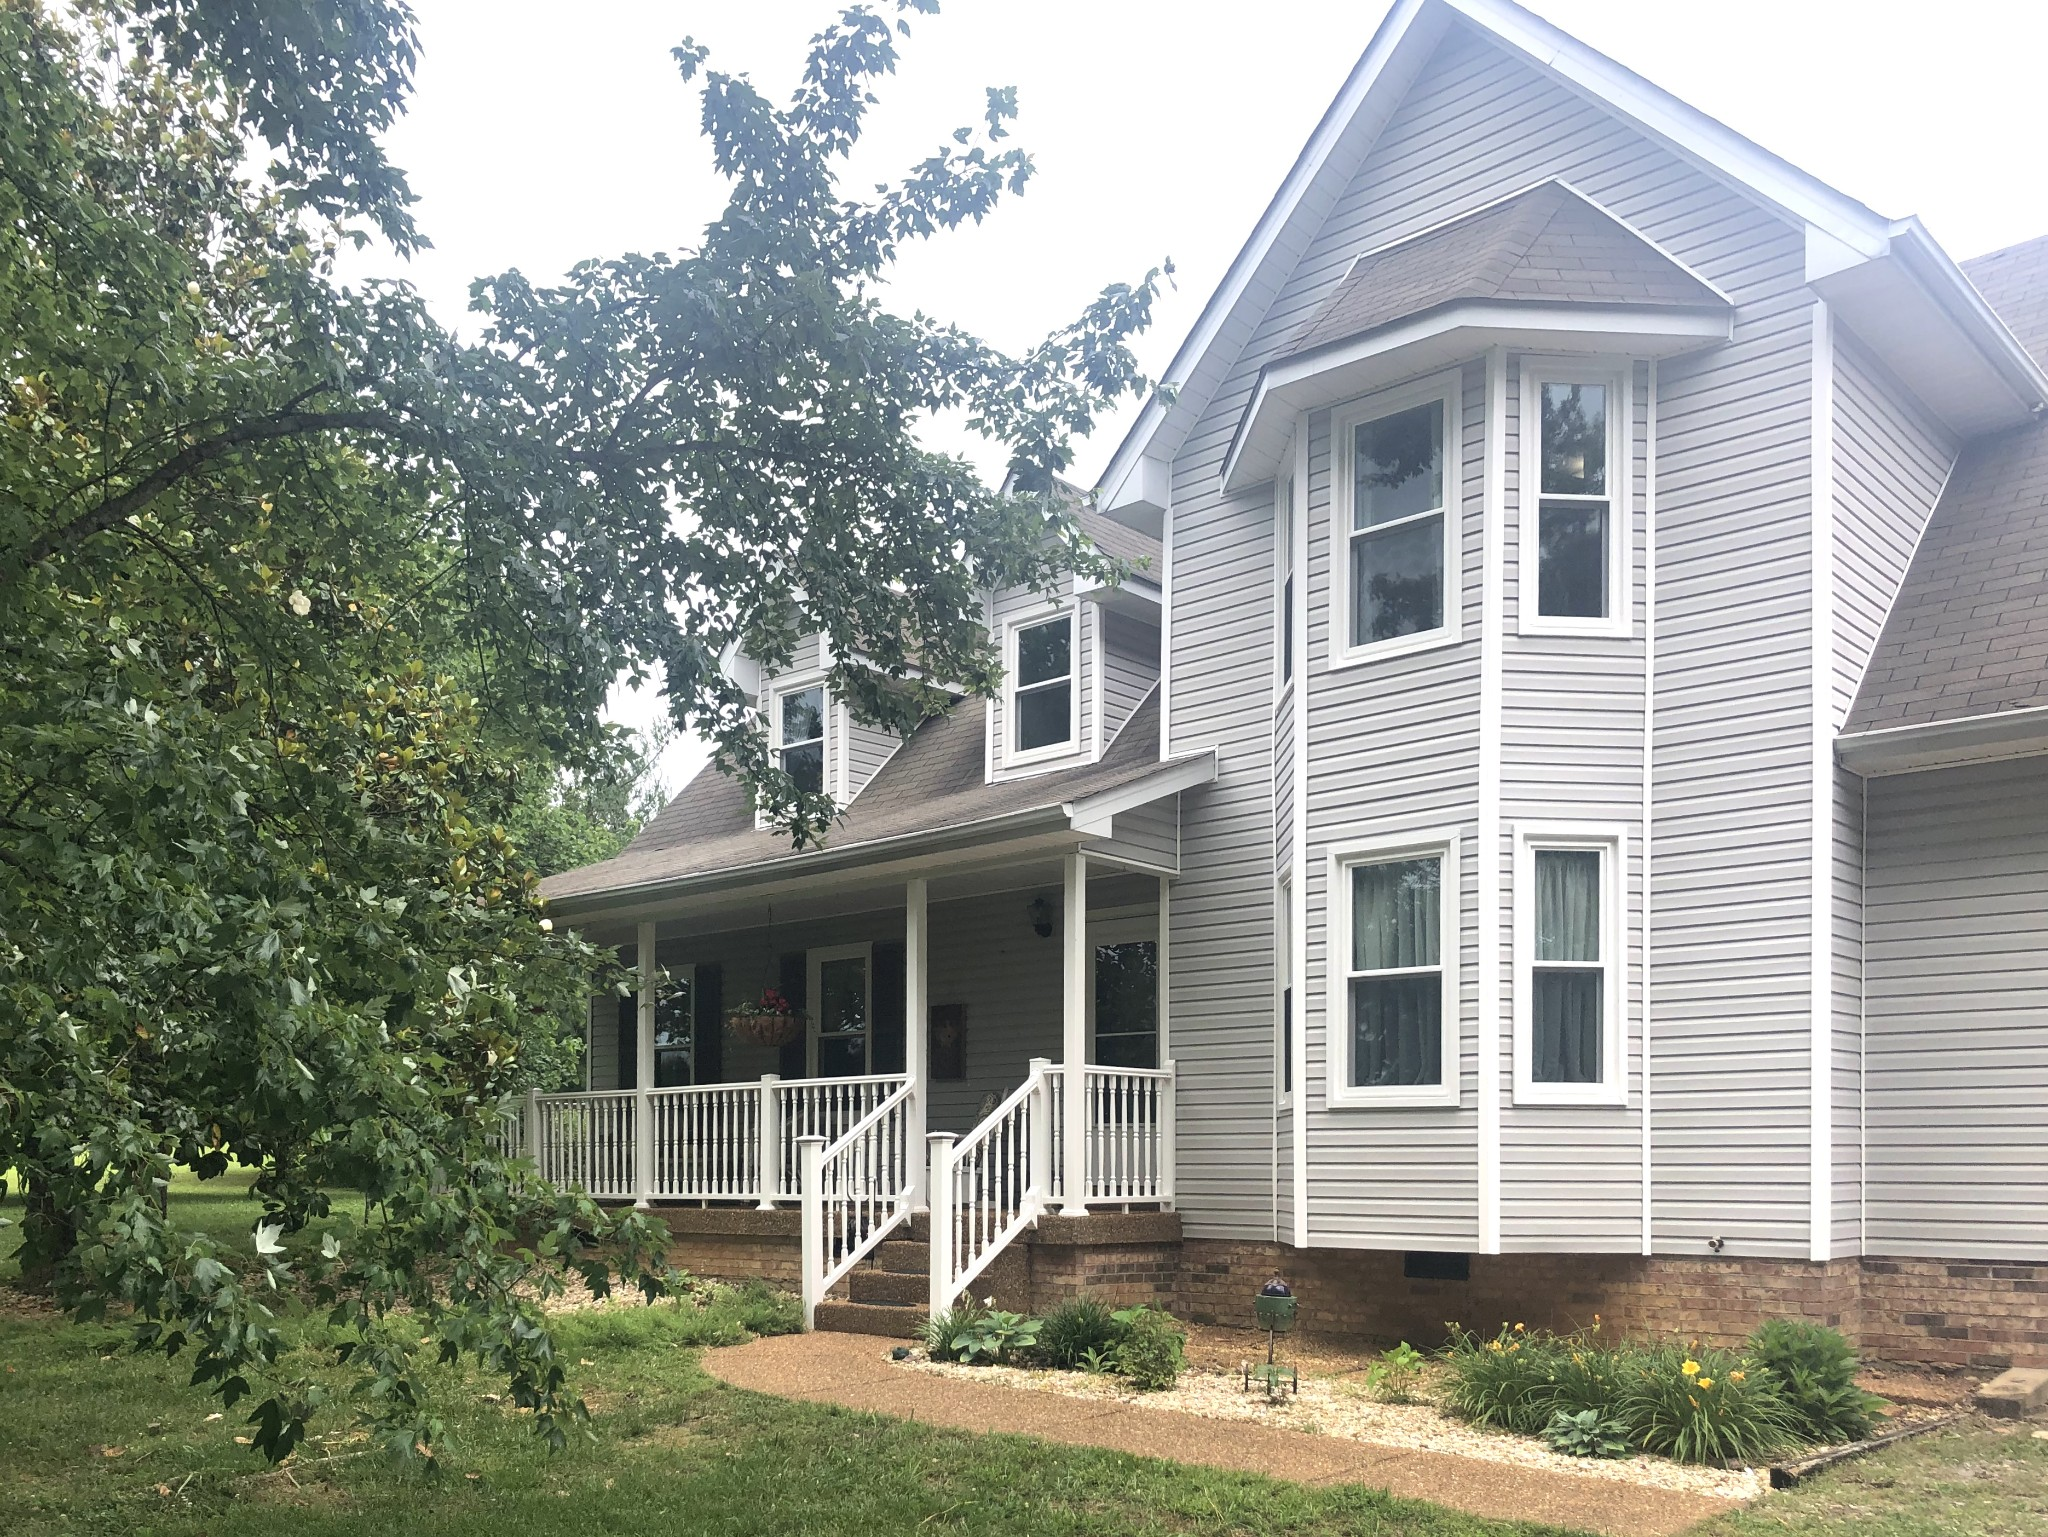 3681 Verona Caney Rd Property Photo - Lewisburg, TN real estate listing